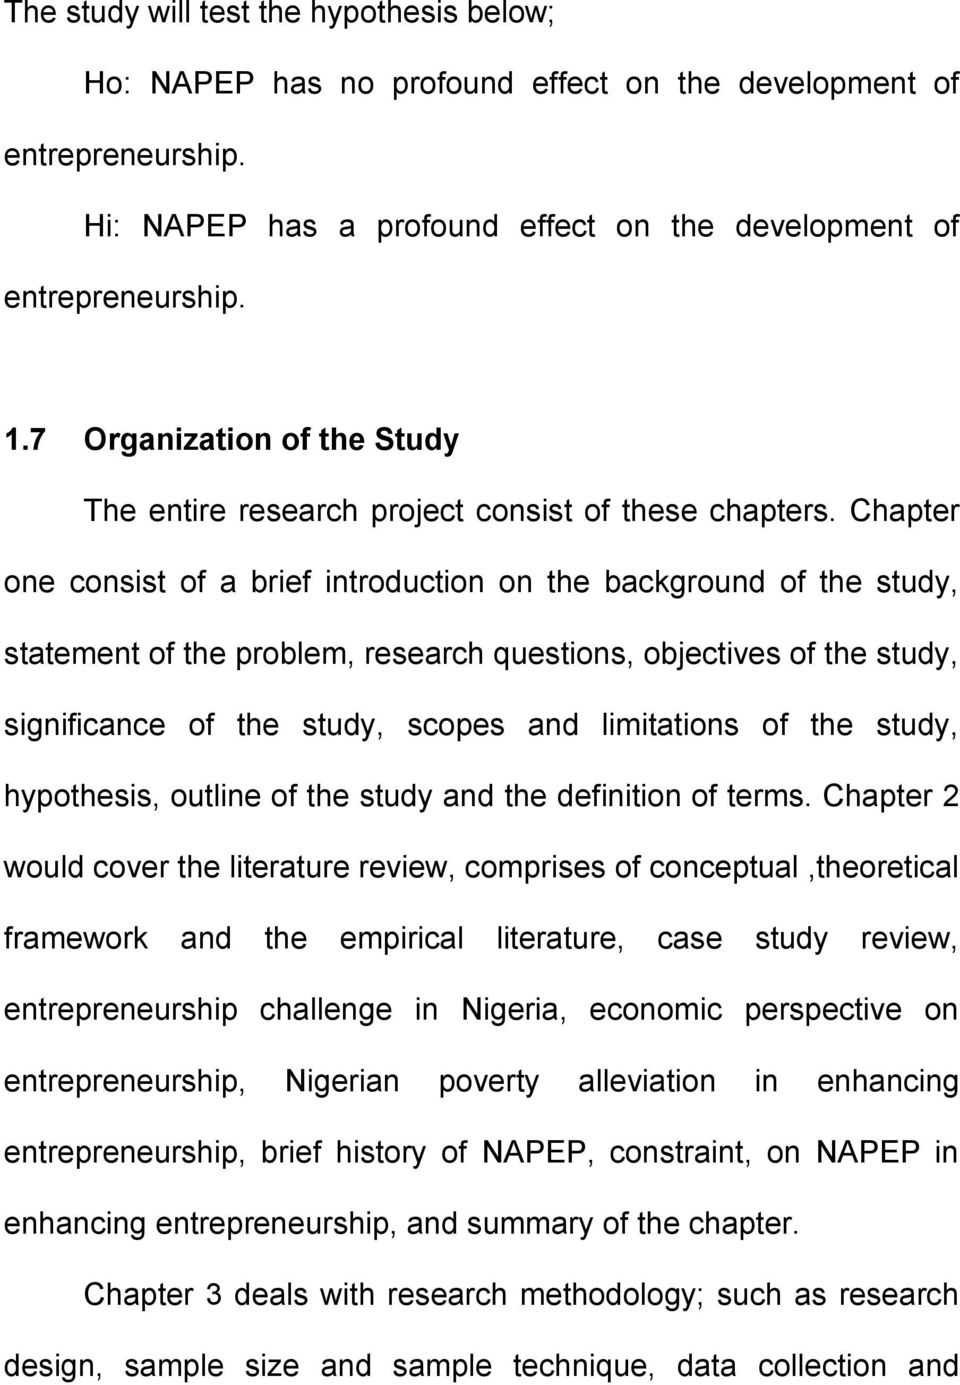 Phd thesis analysis chapter